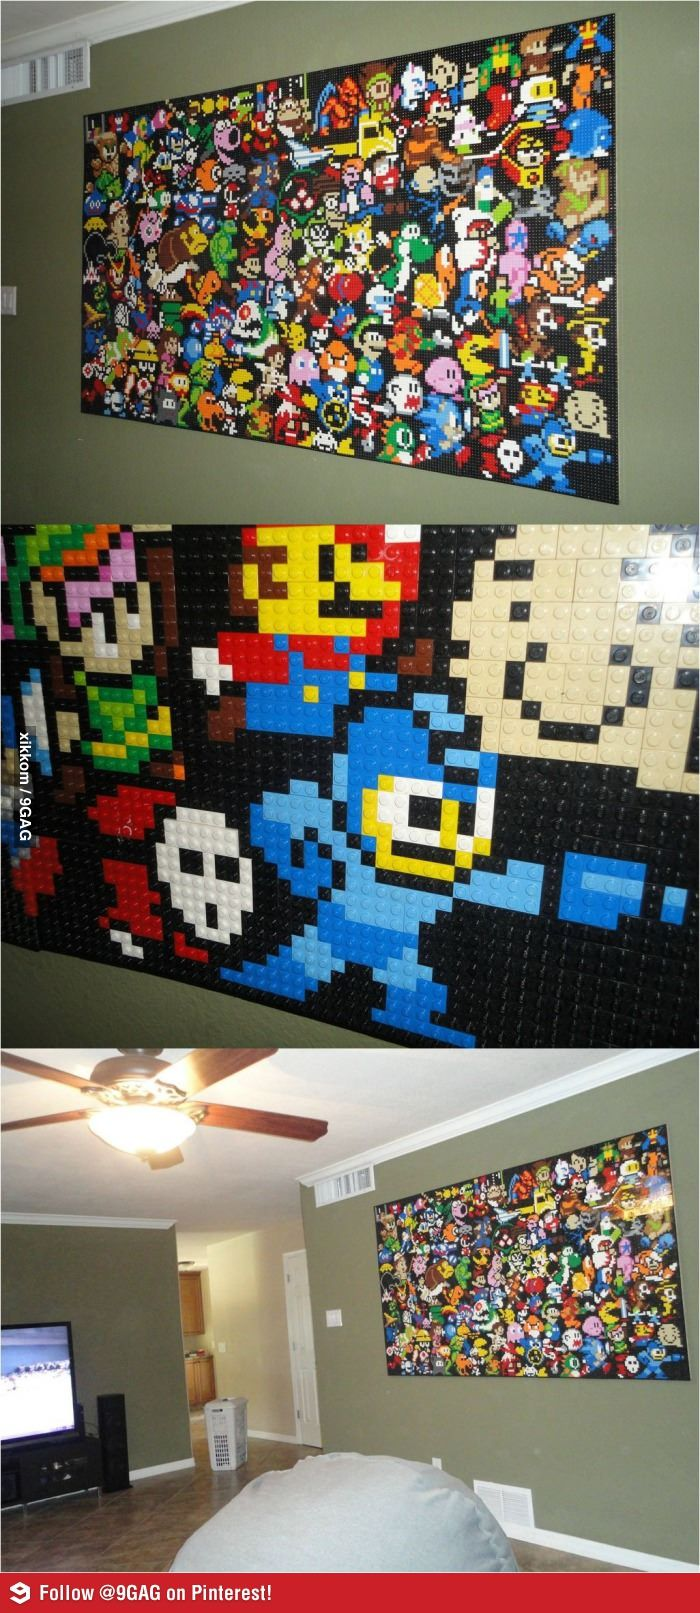 Awesome!! Video Game Classics on a lego wall!